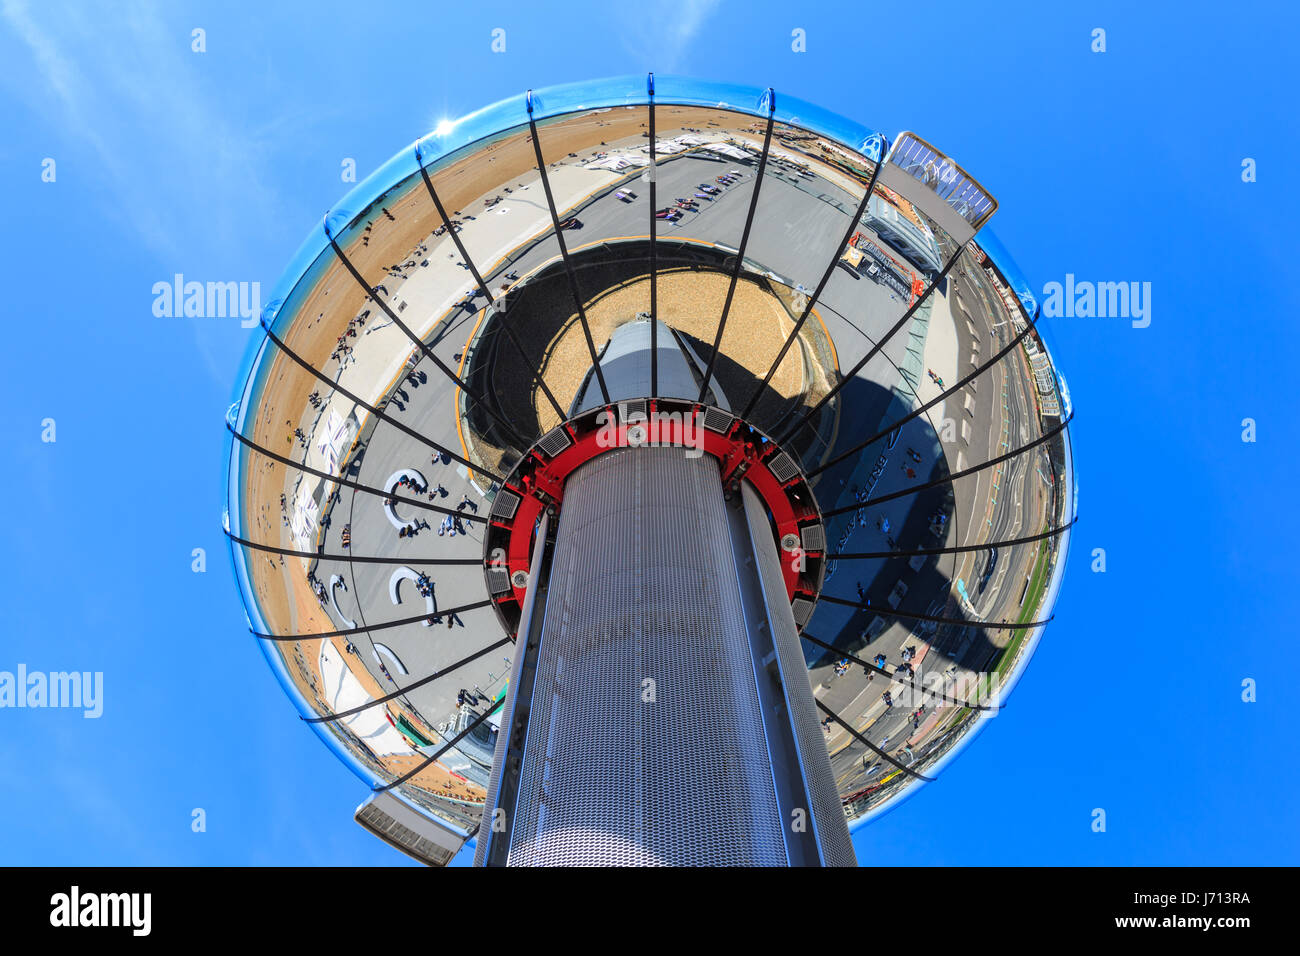 Brighton British Airways i360 observation tower on the seafront, Brighton, East Sussex, UK - Stock Image